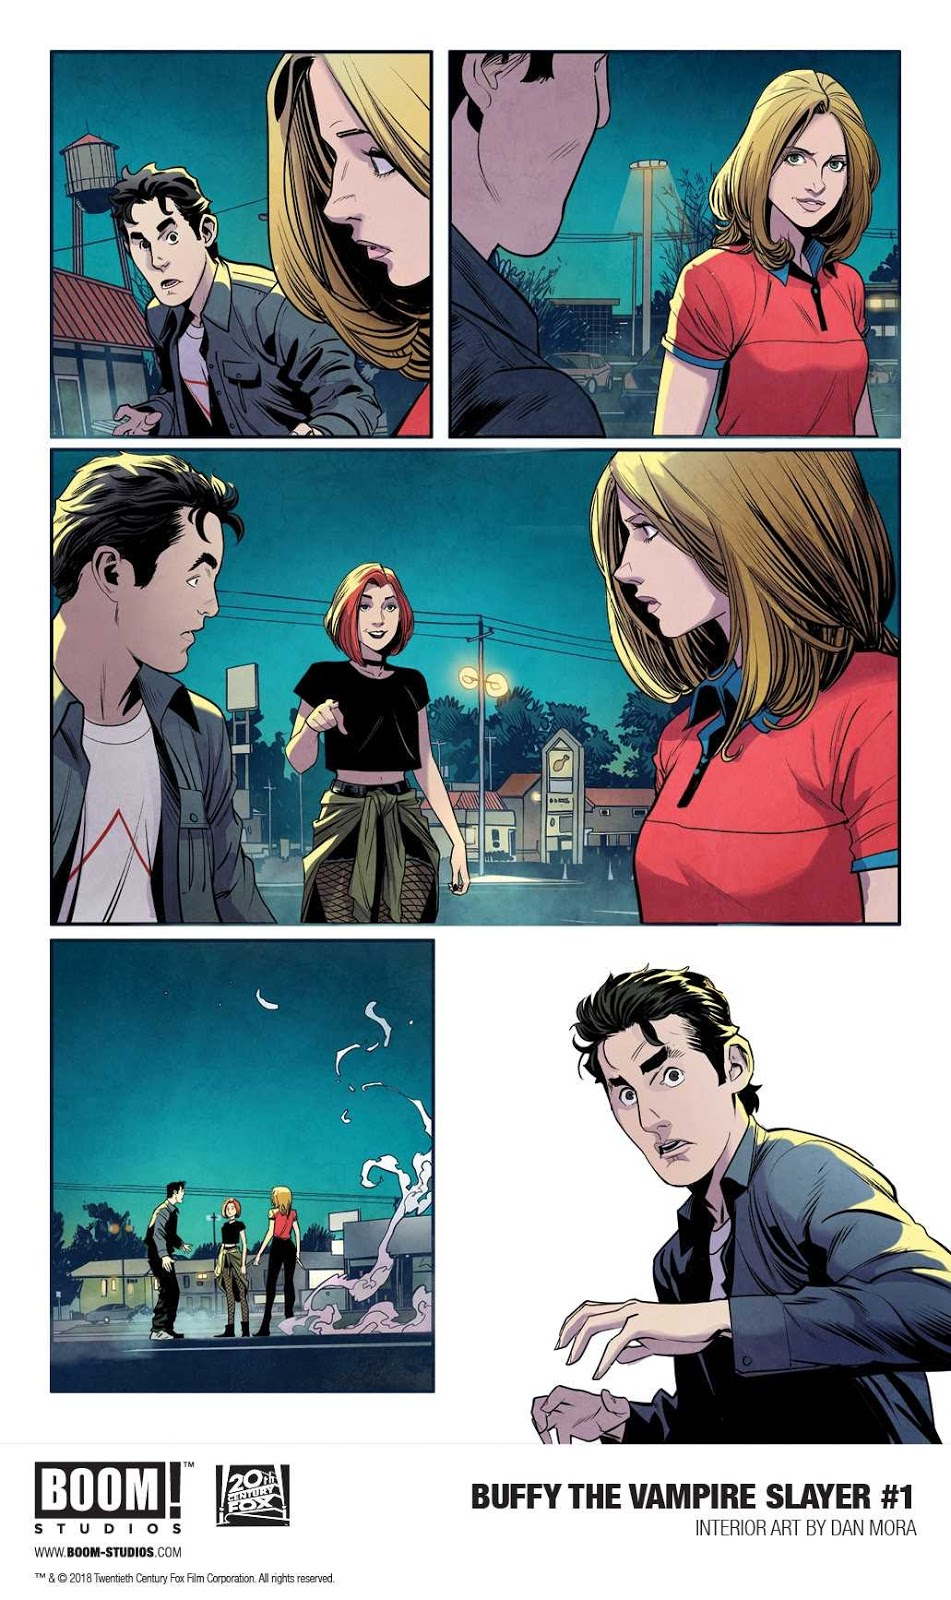 Buffy the Vampire Slayer #1 Preview